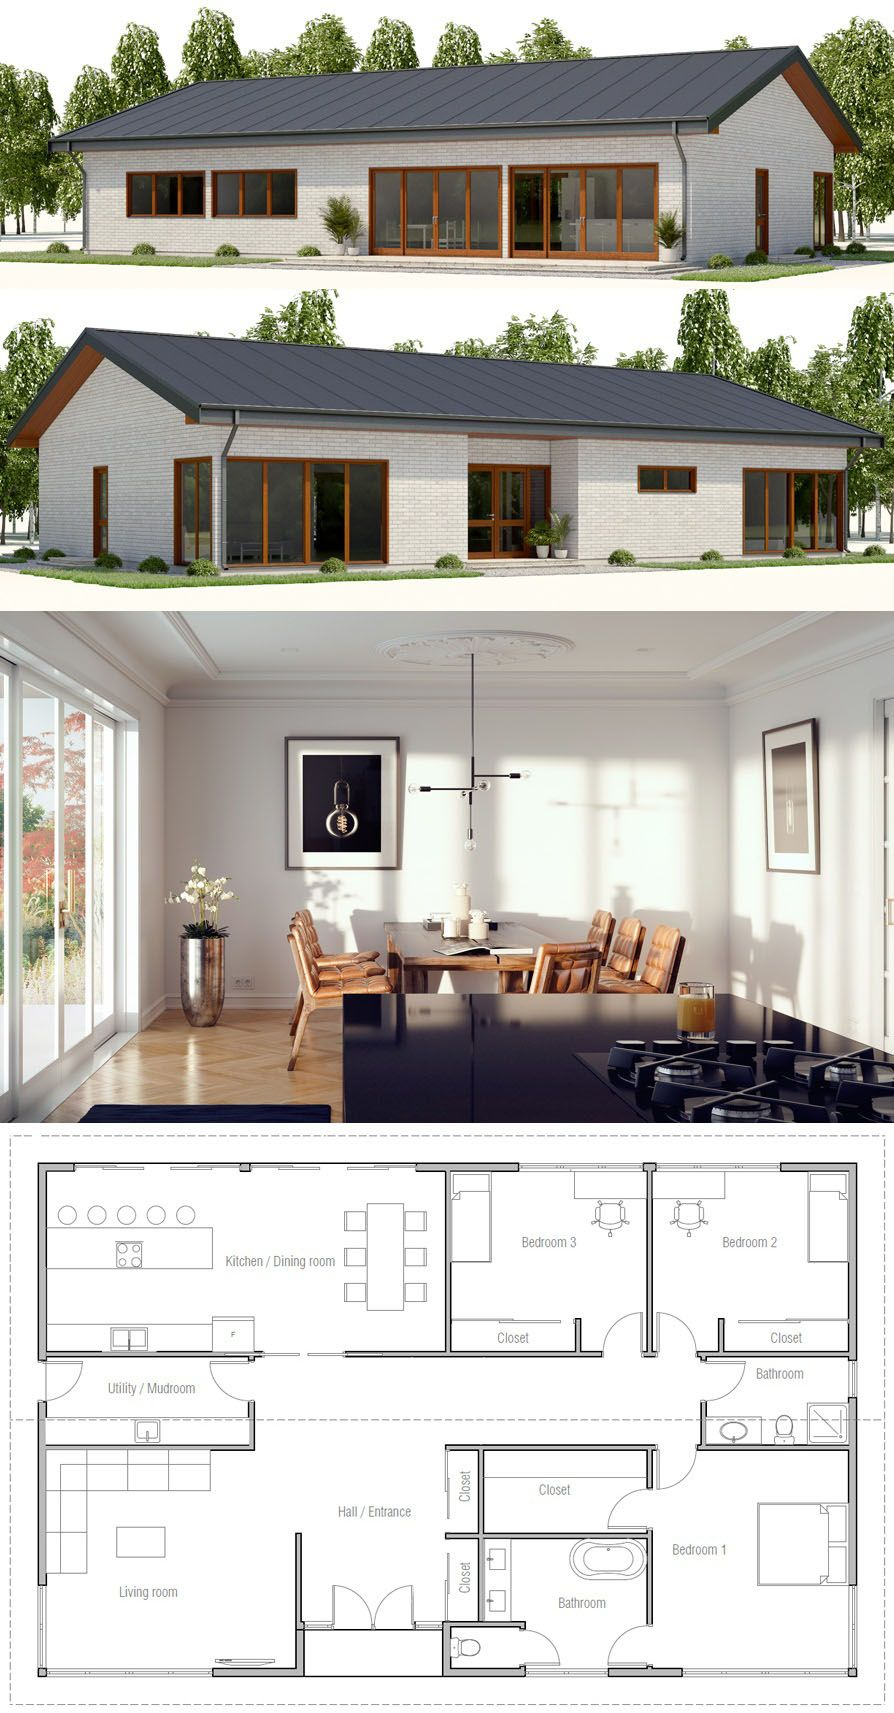 Home Plan Three Bedroom House Plan Small House Plans House Architecture Design Architecture House